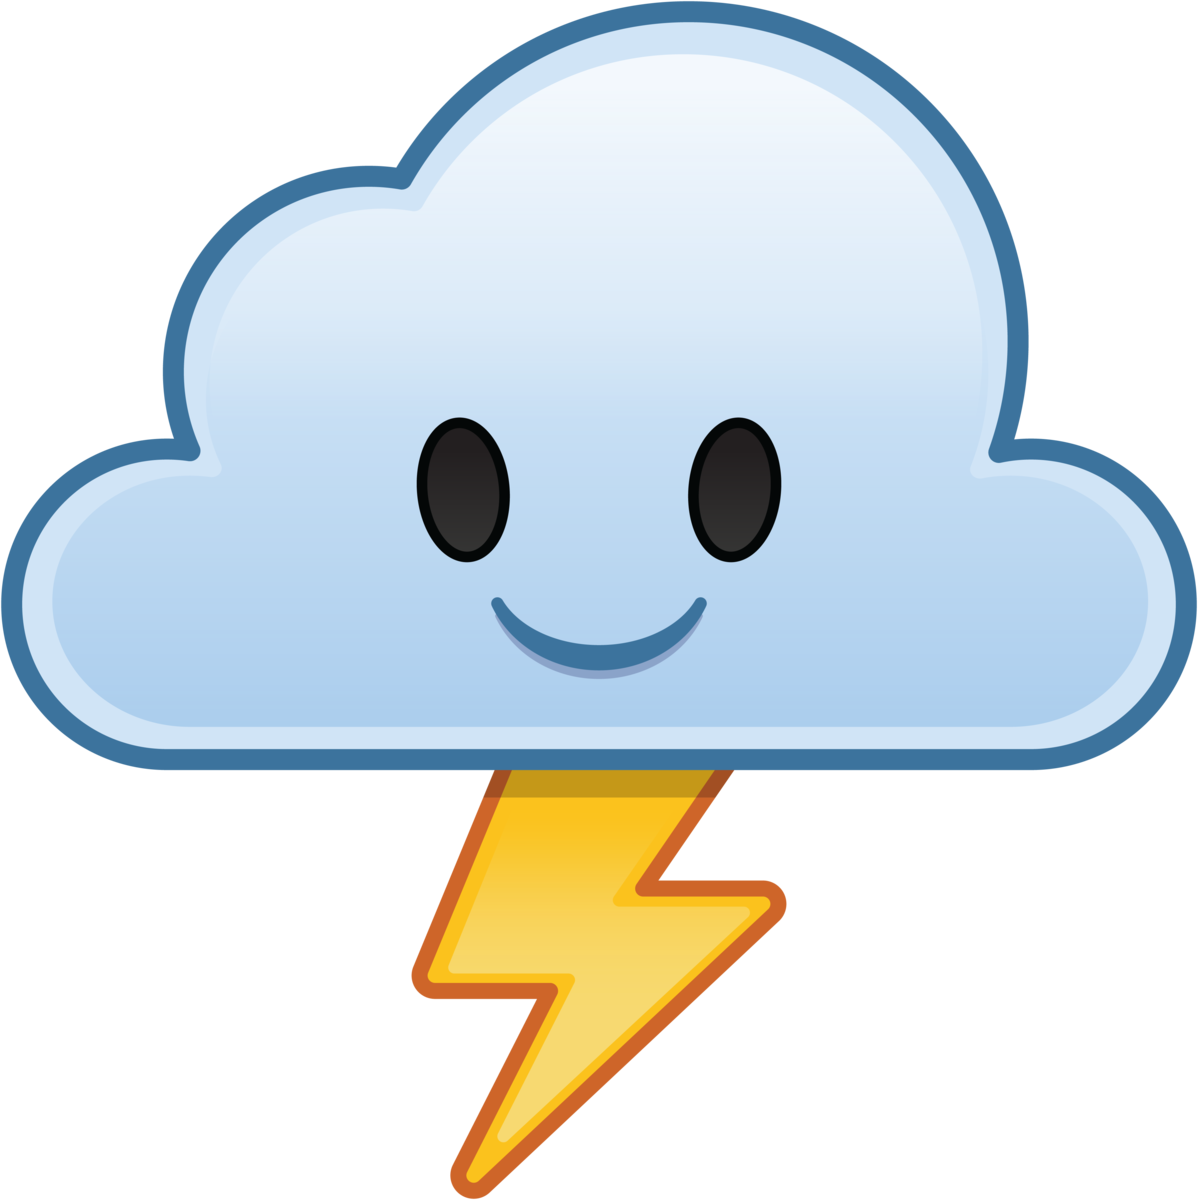 Star wars emoji blitz clipart clip art freeuse stock Image - Emoji Blitz Lightning.png | Disney Wiki | FANDOM powered by ... clip art freeuse stock